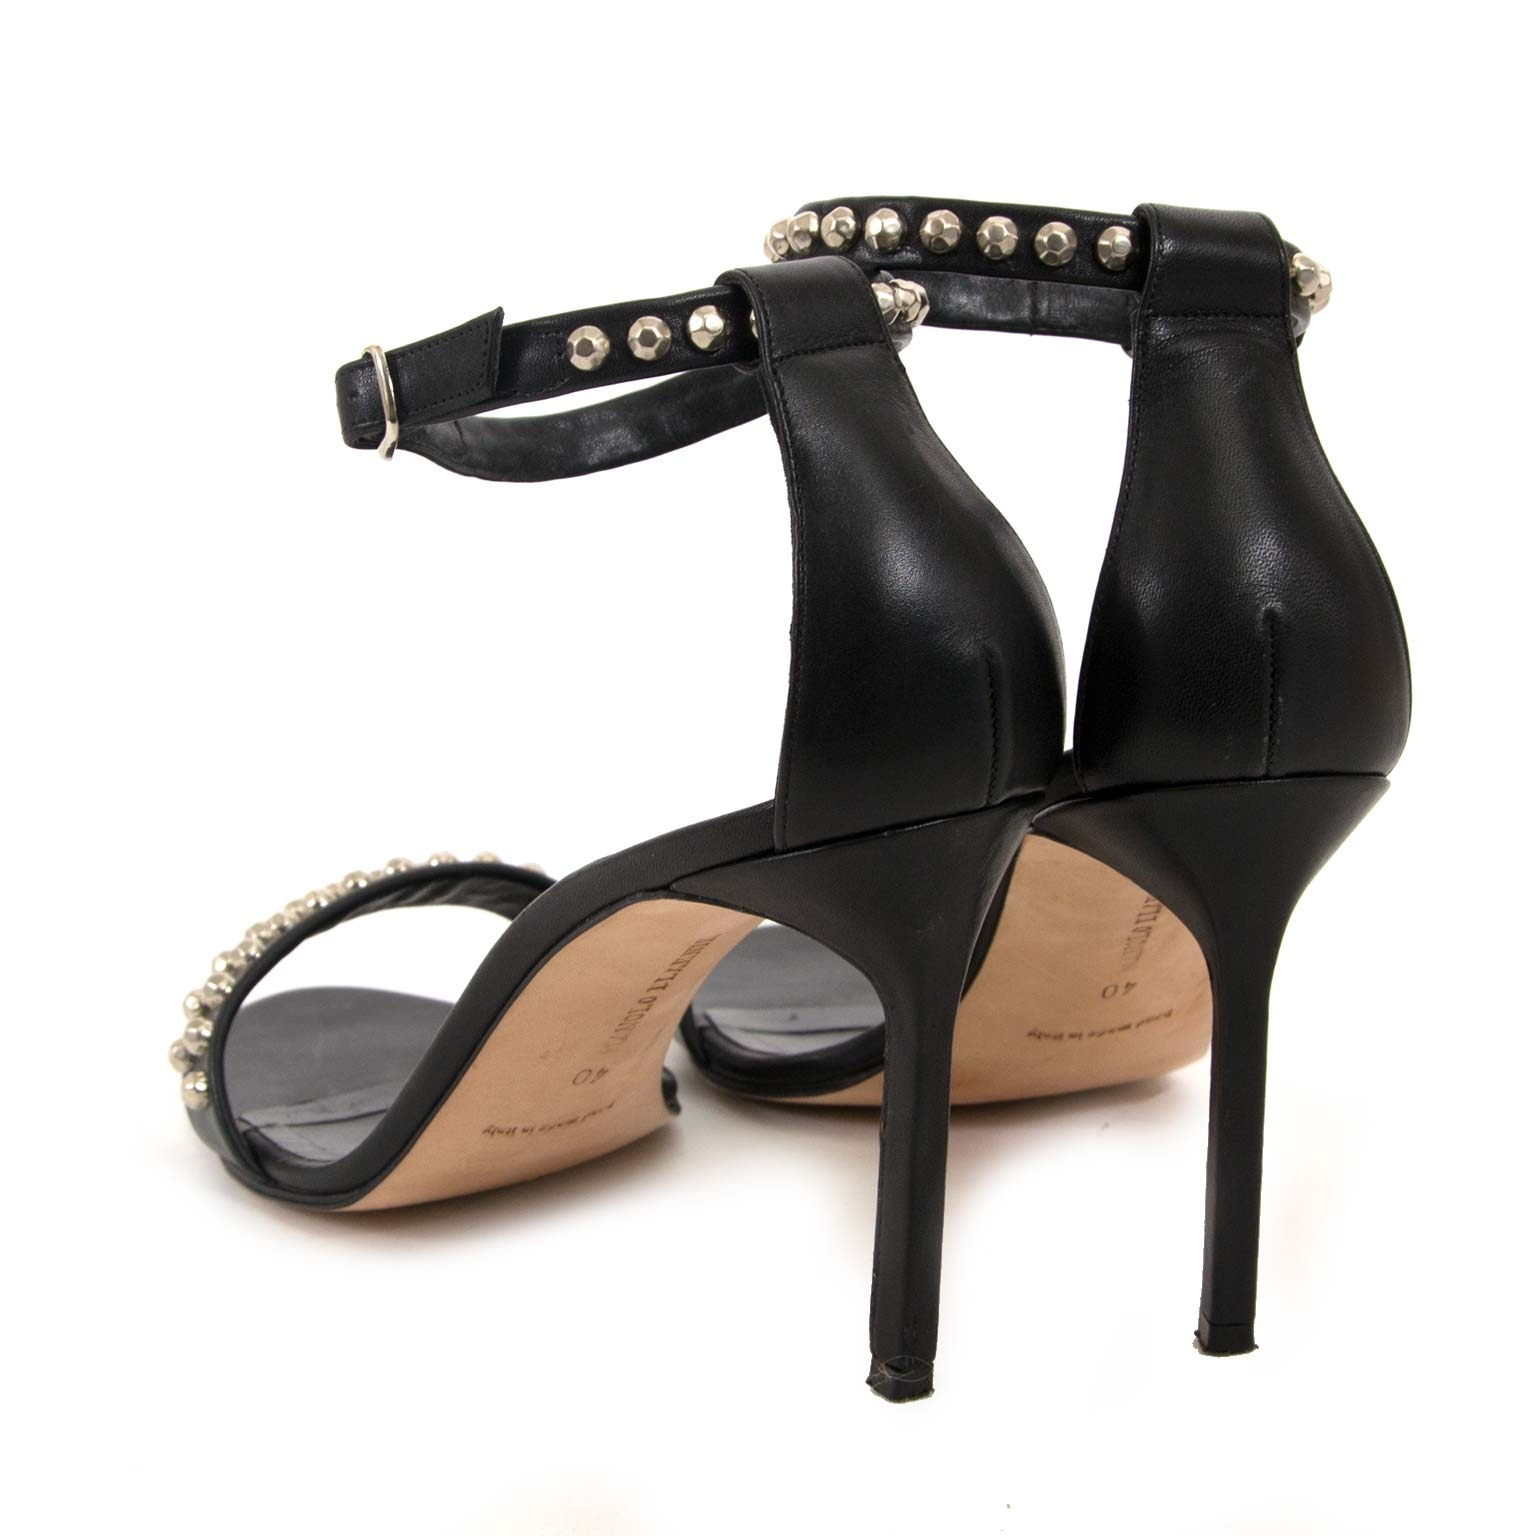 manolo blahnik black miramar studded leather sandals now for sale at labellov vintage fashion webshop belgium